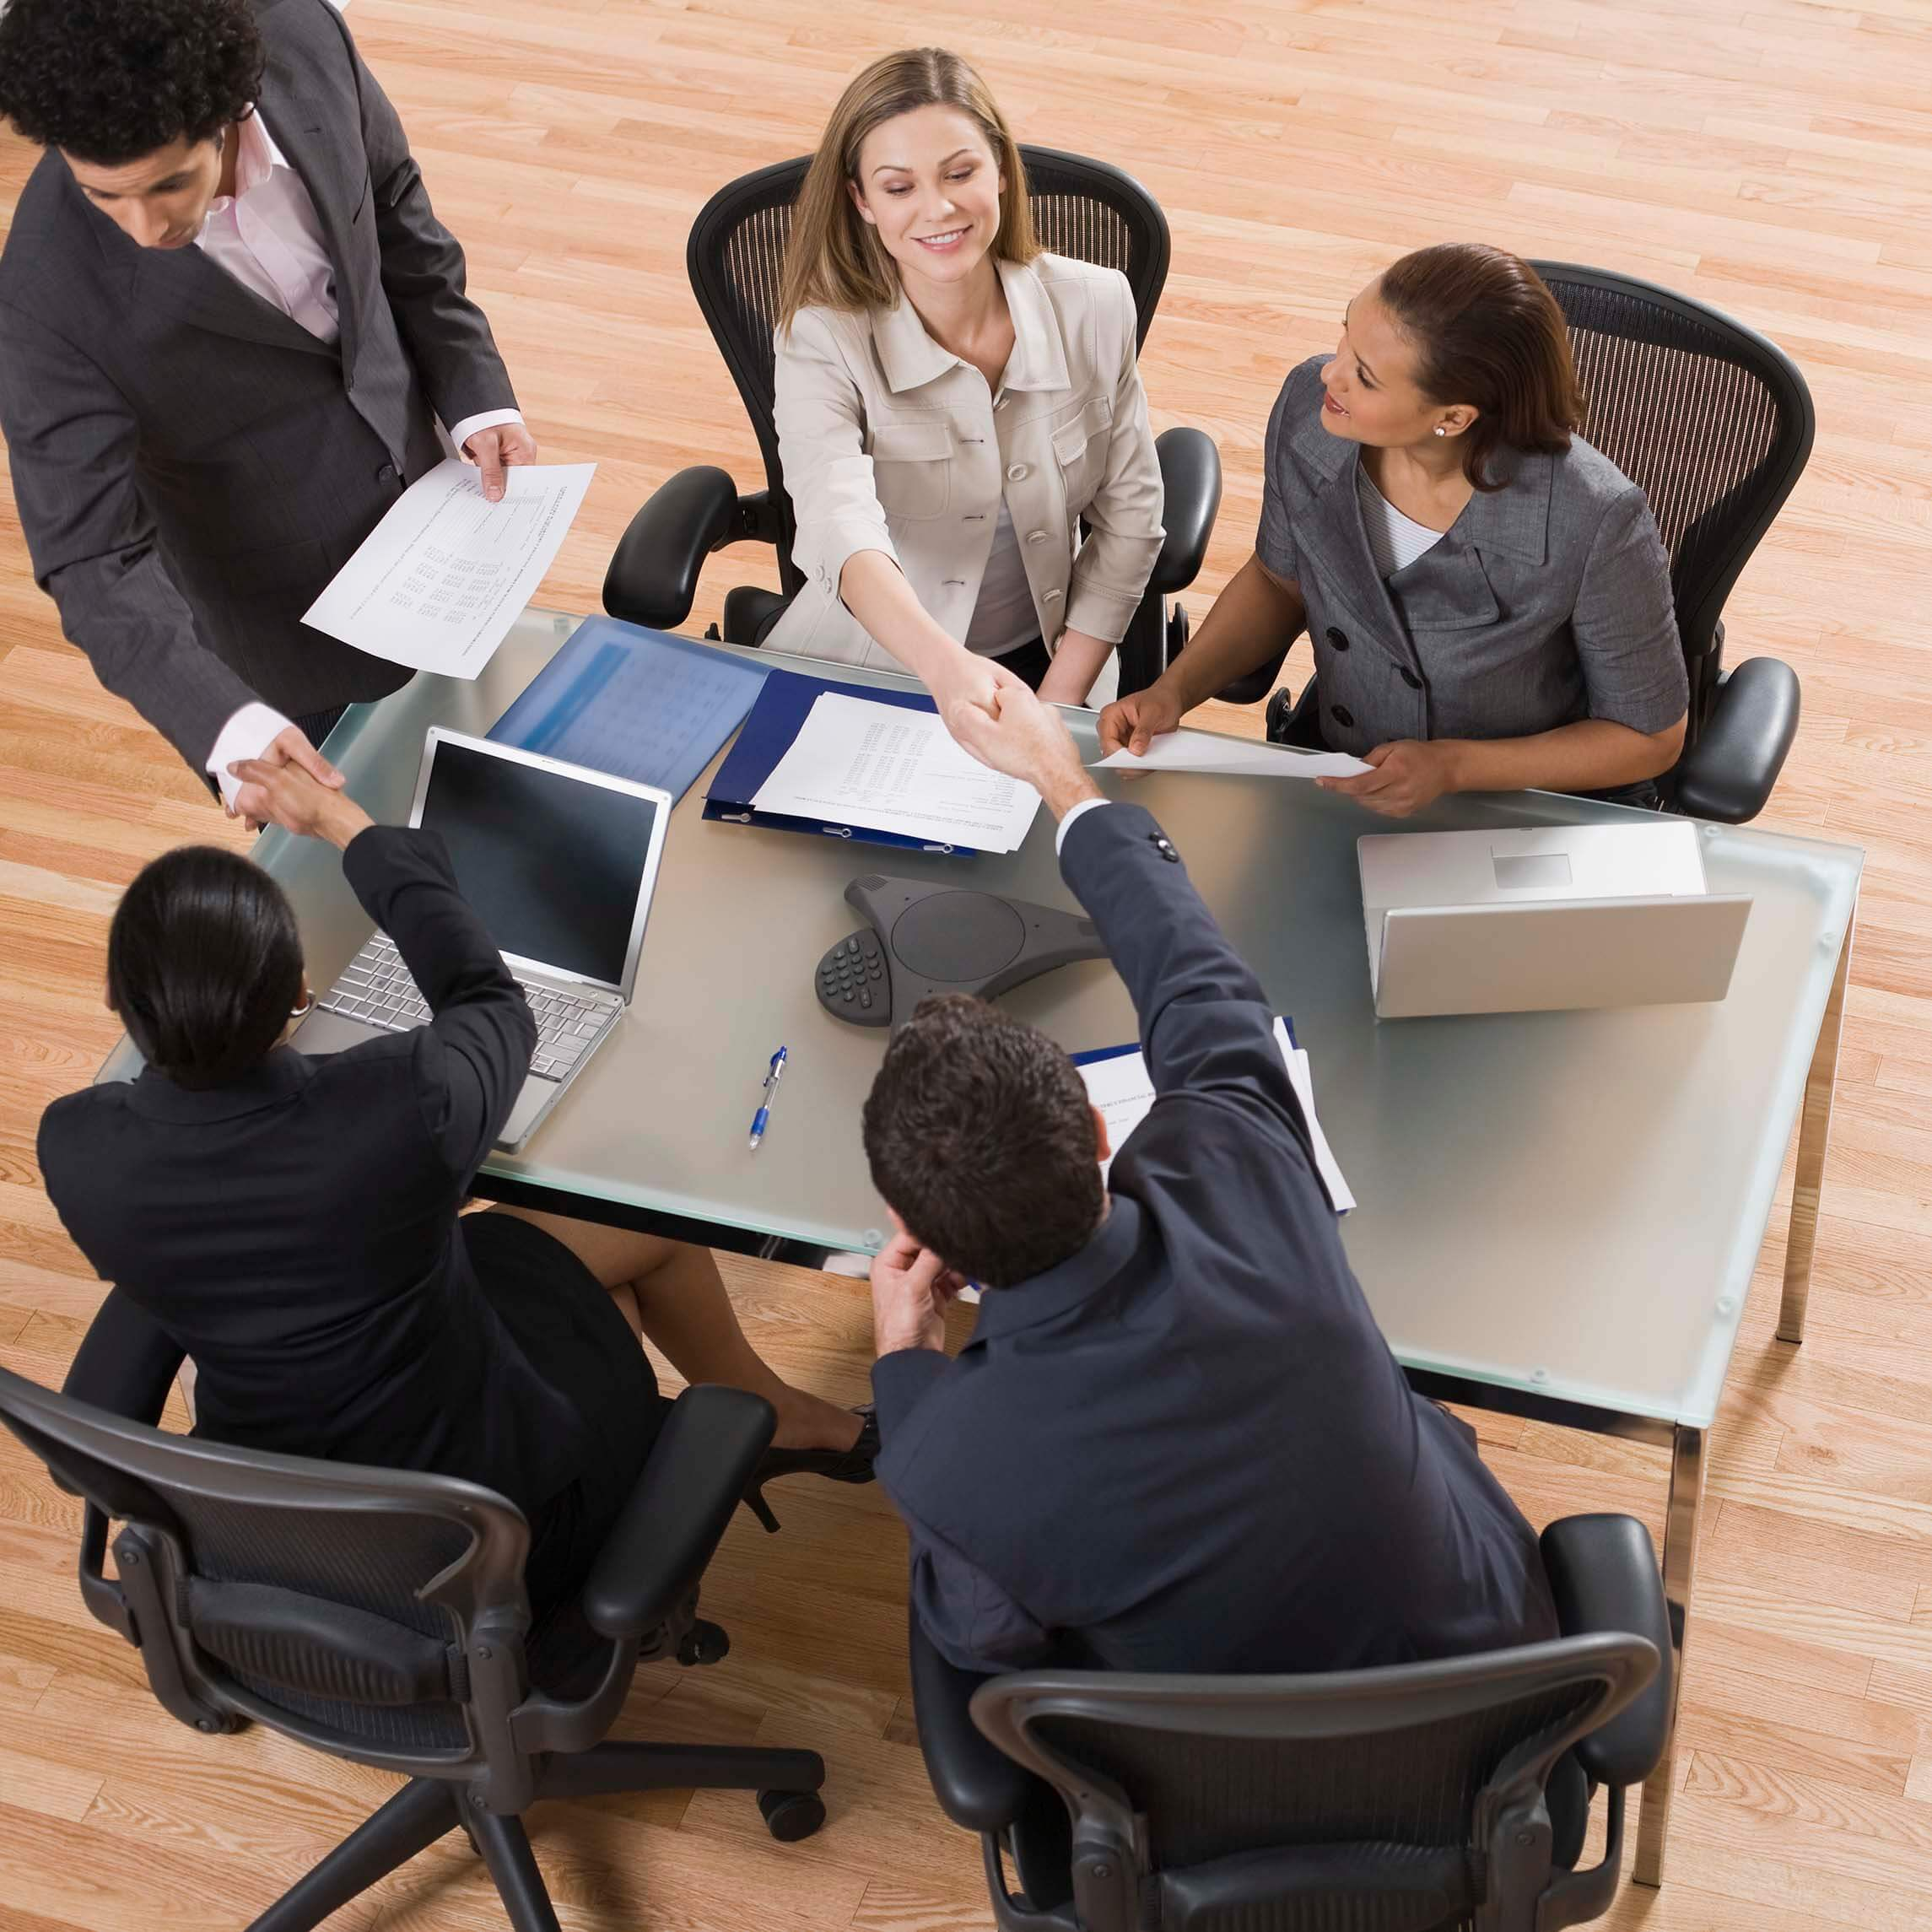 High angle view of business meeting to illustrate